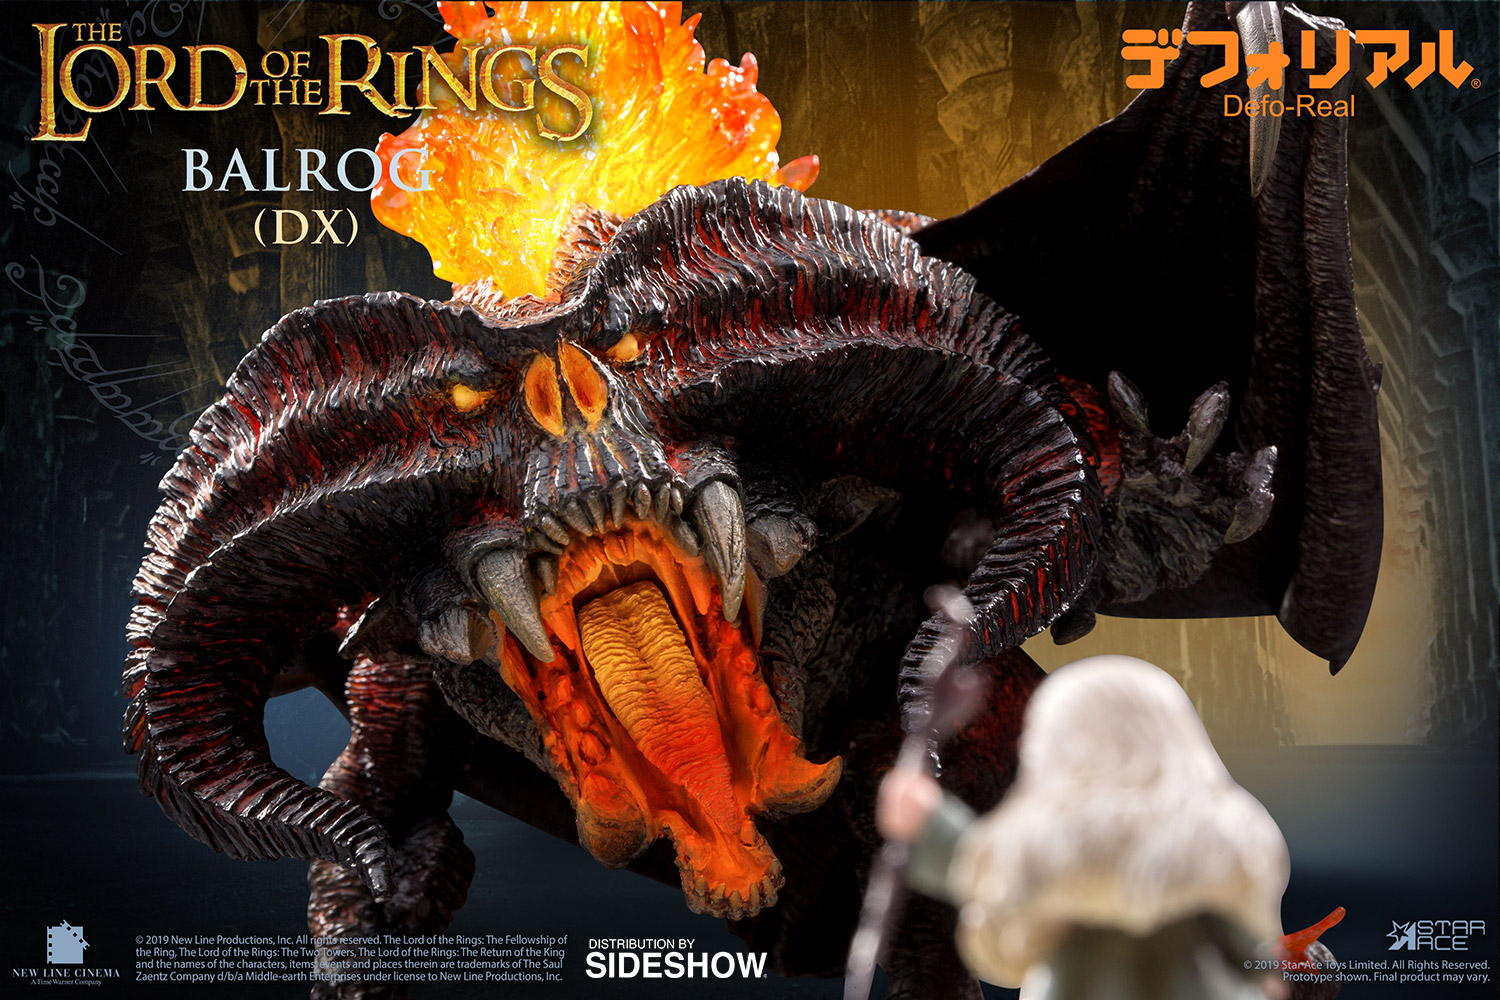 The Lord Of The Rings Balrog Deluxe Version Vinyl